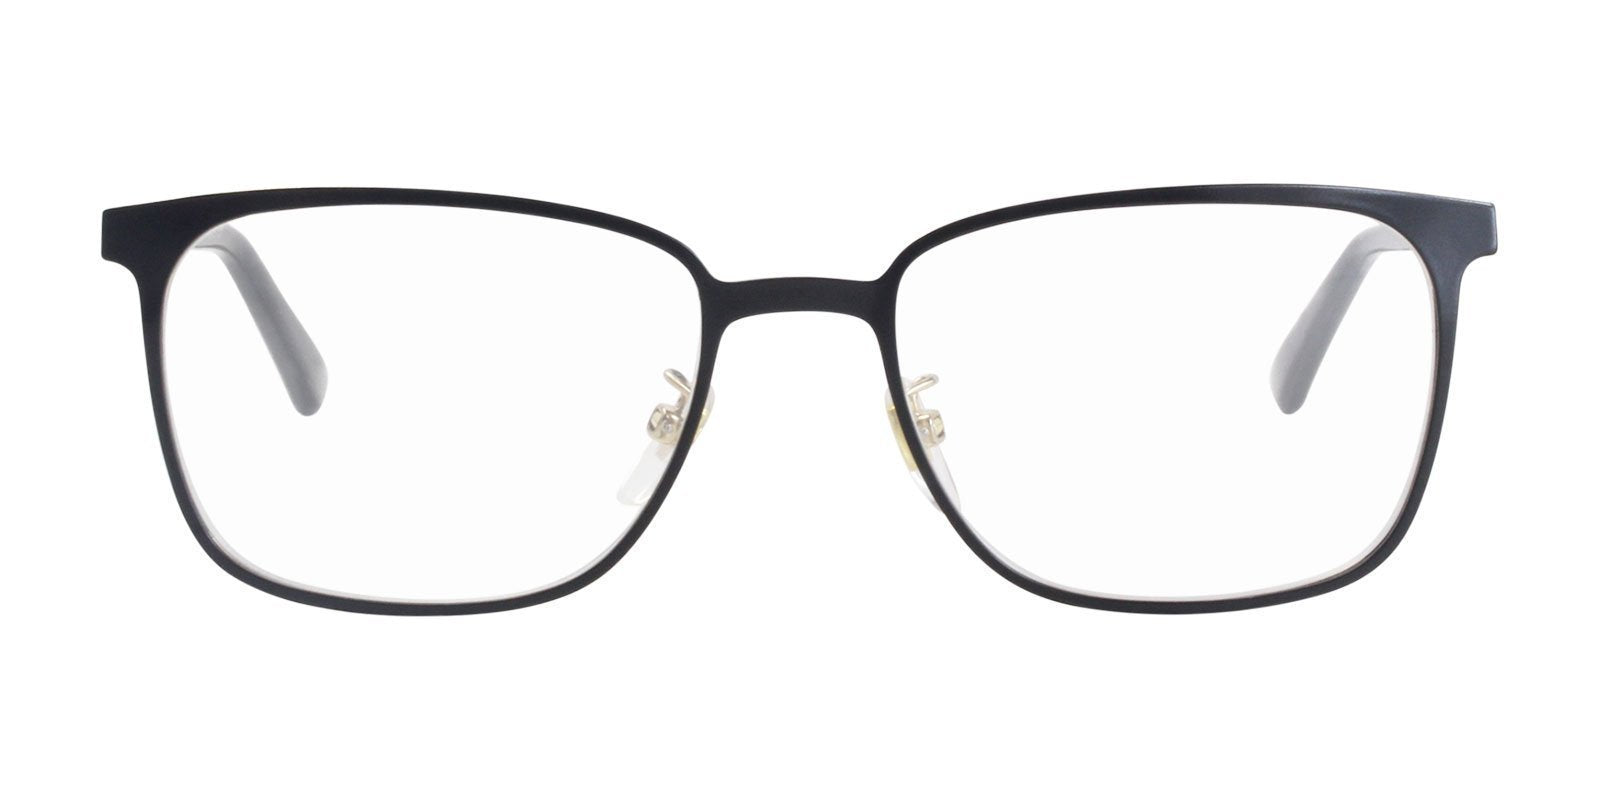 Gucci - GG0294O Black Rectangular Unisex Eyeglasses - 54mm-Eyeglasses-Designer Eyes